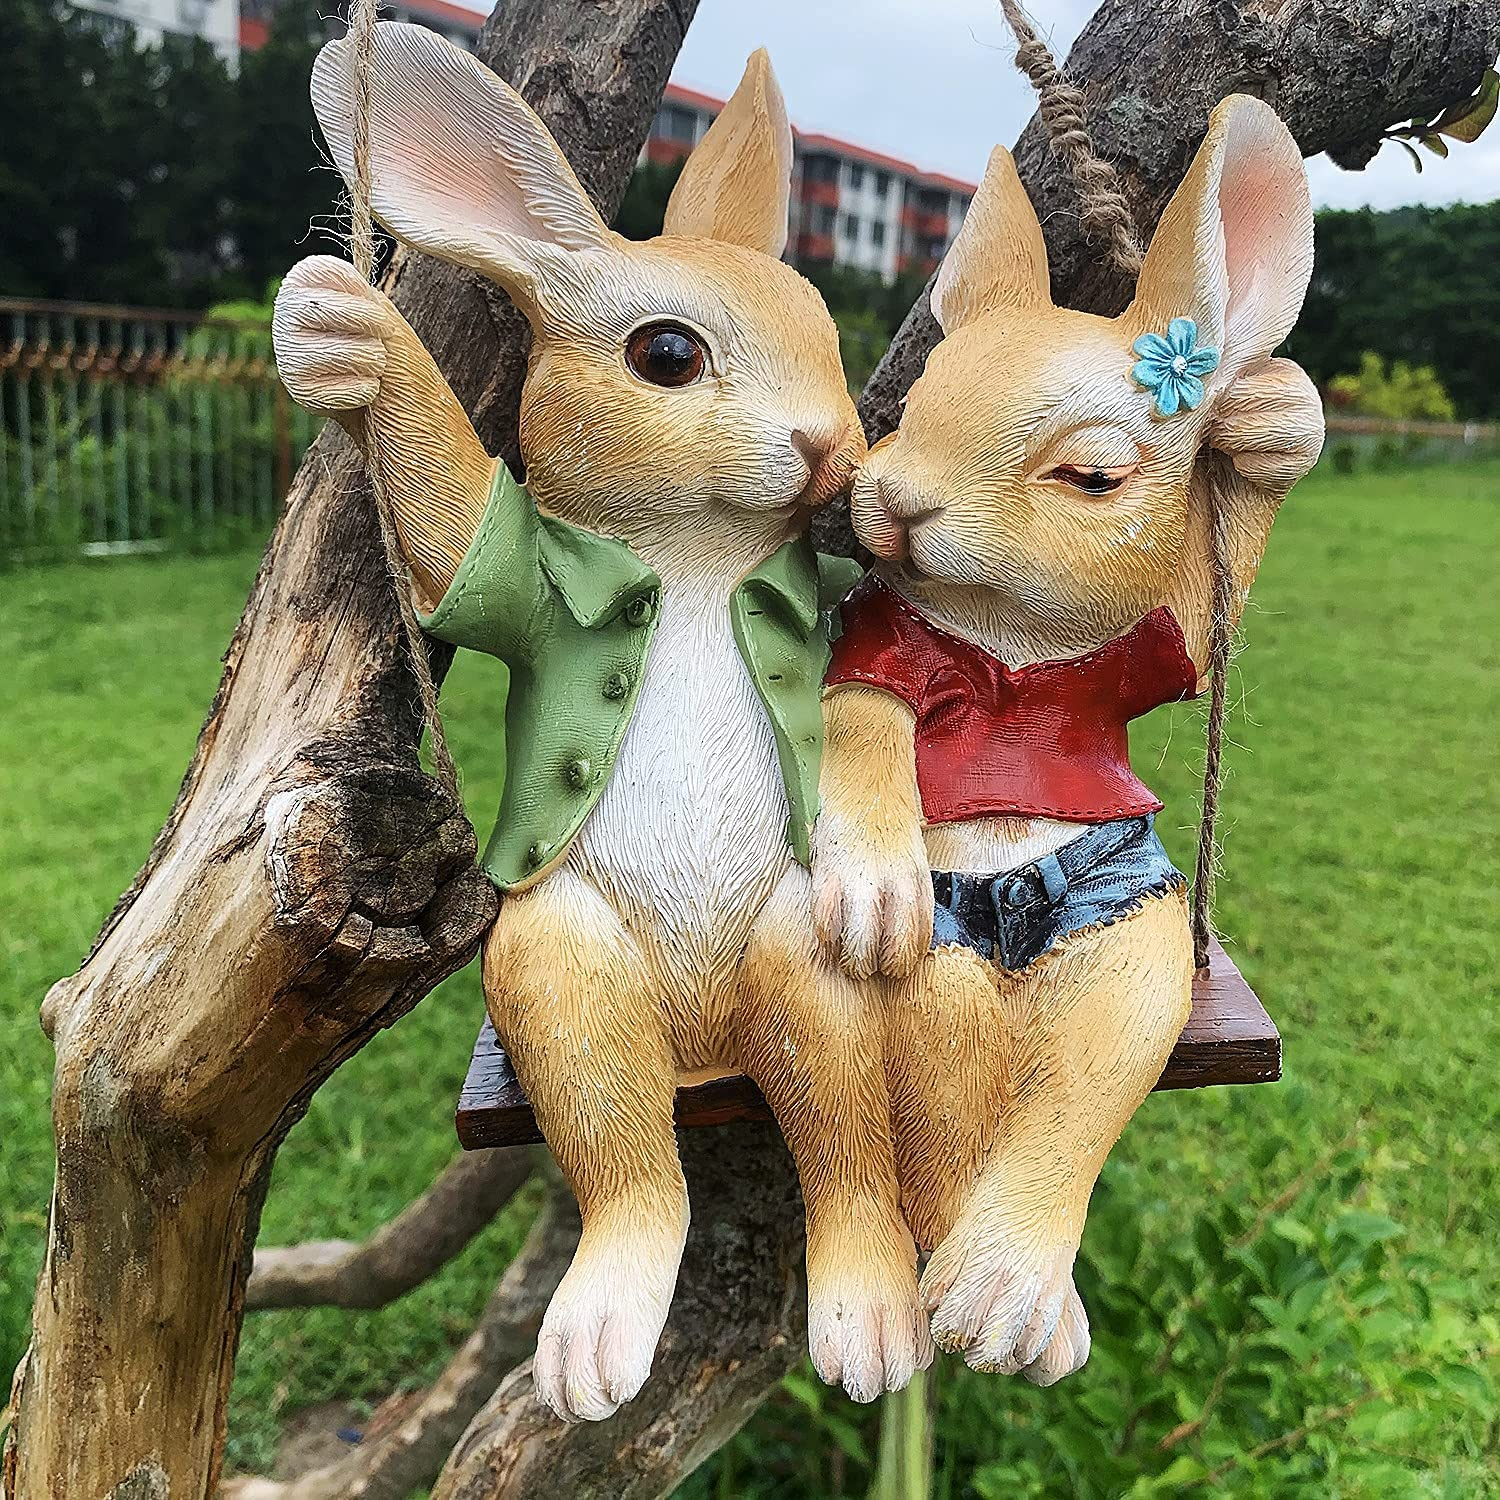 iRonrain Garden Statue Swing Bunny Couples, Indoor Outdoor Cute Hanging Rabbits Lover Sculpture Funny Simulation Art Décor Figurine Ornament for Fence Pathway Backyard Landscape Tree Decorations